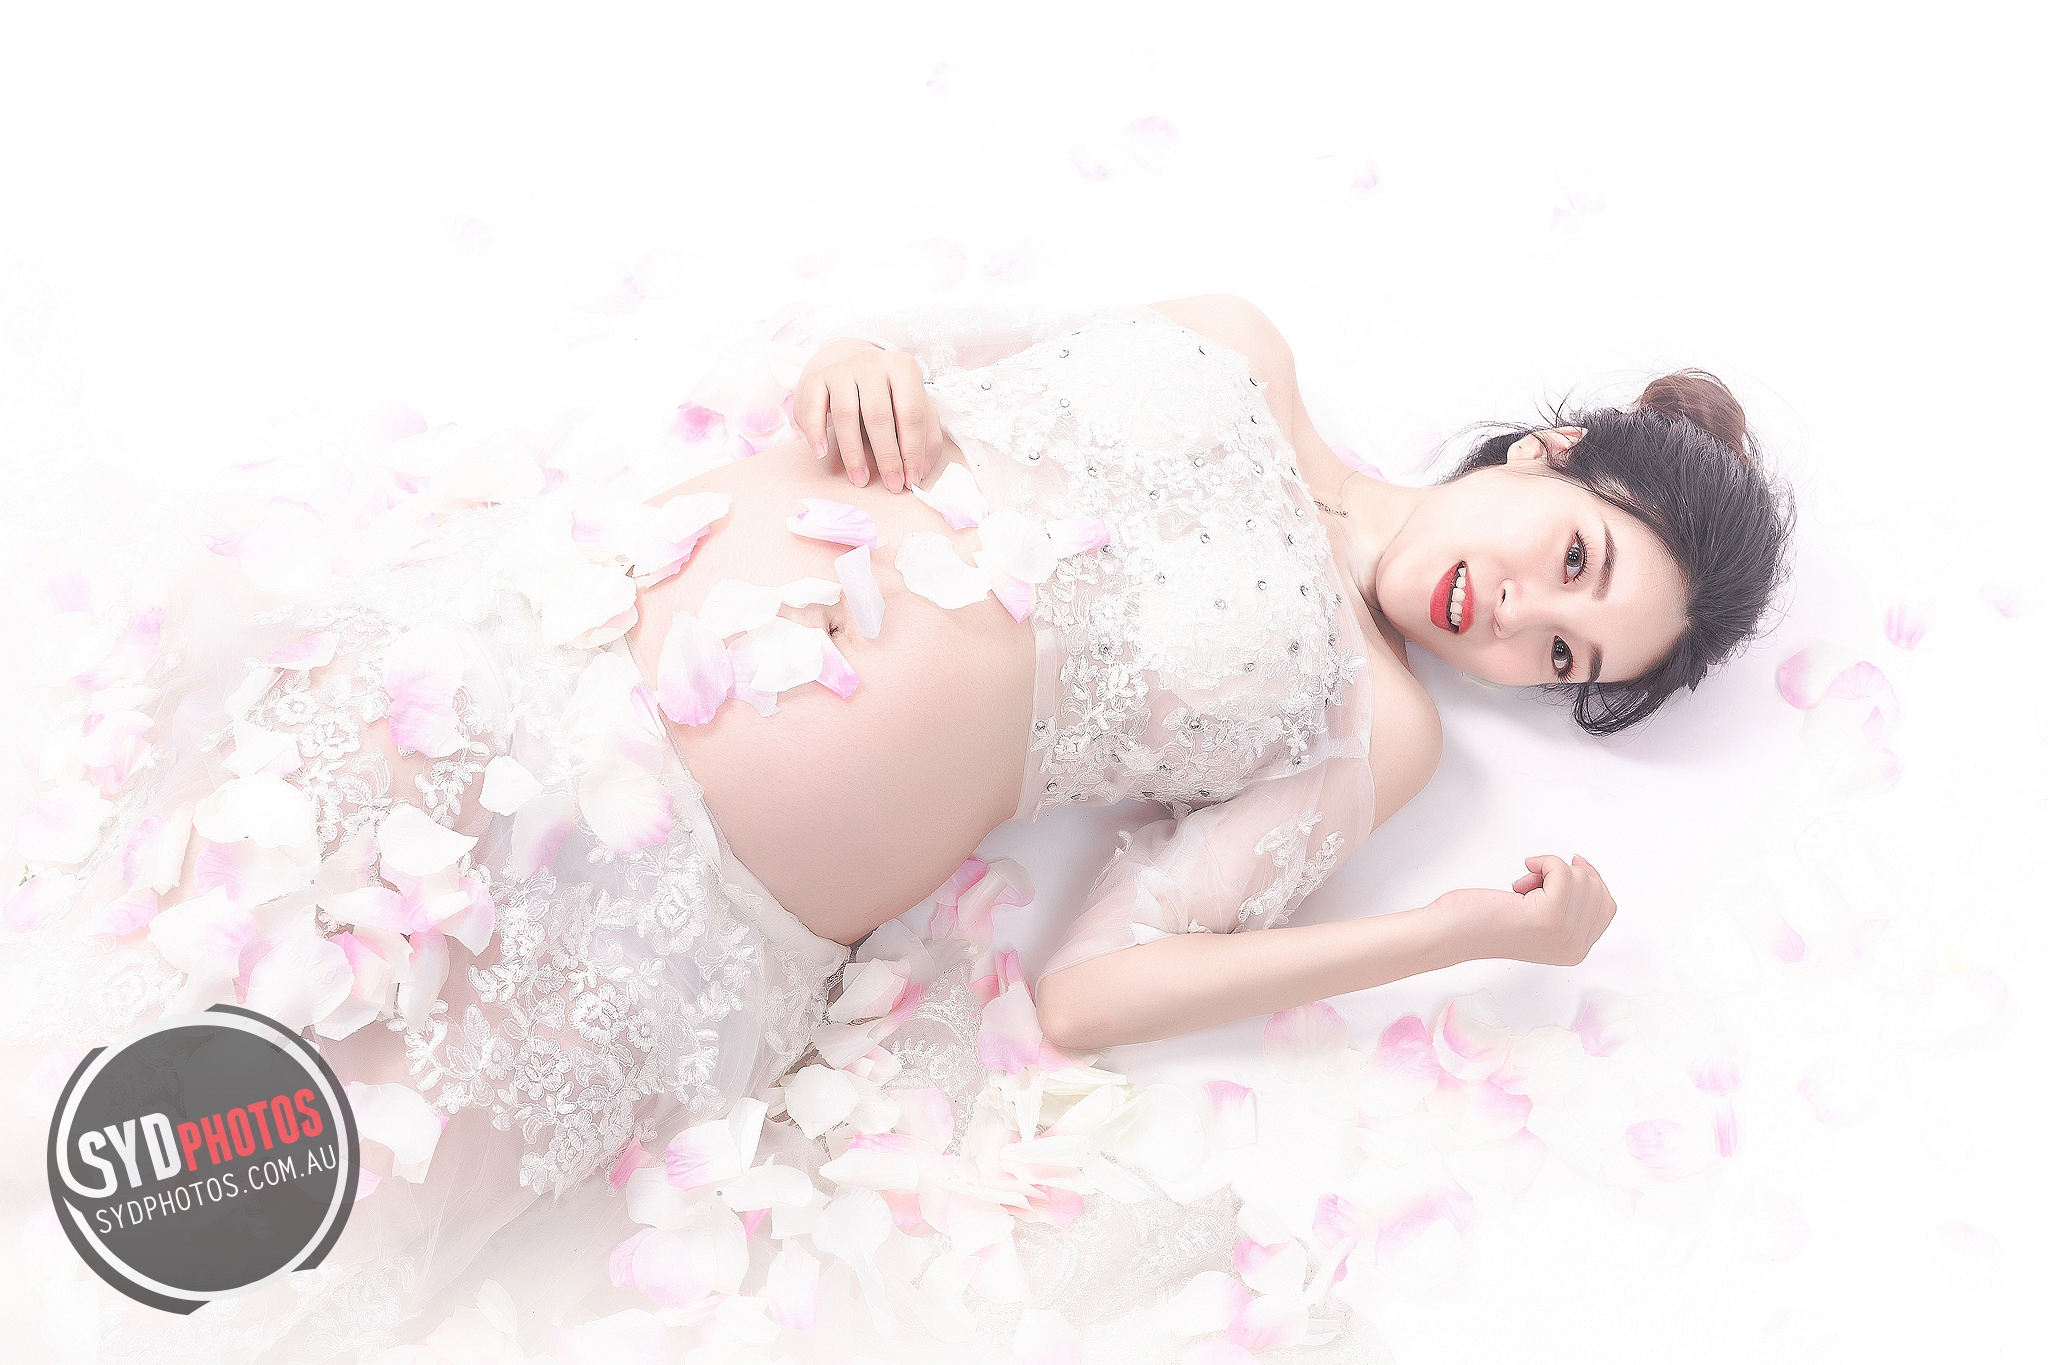 id-106091-20190308-retouch-3.jpg, By Photographer Pregnancy, Created on 25 Mar 2019, SYDPHOTOS Photography all rights reserved.